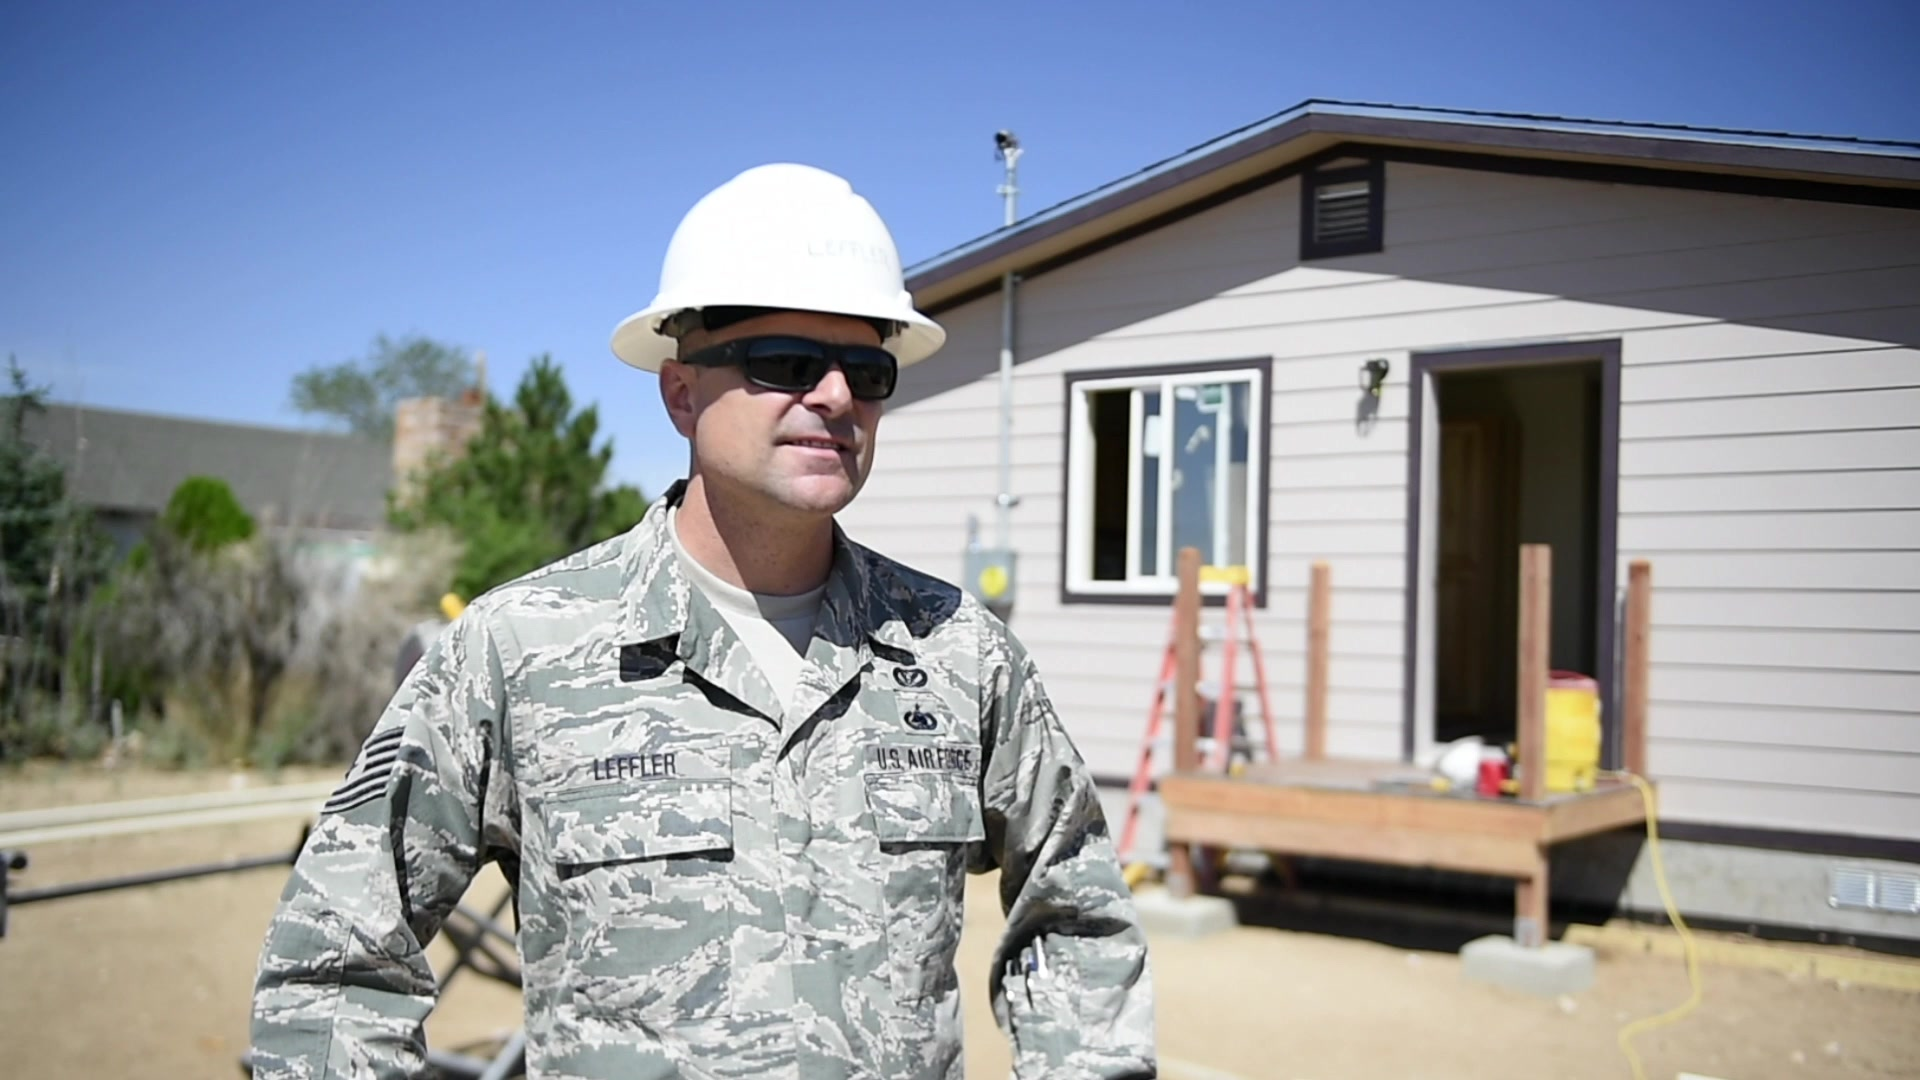 Members from the 133rd and 148th Civil Engineer Squadrons build homes for Navajo Veterans as part of an Innovative Readiness Training program led by the Naval Mobile Construction Battalion 22 in partnership with the Southwest Indian Foundation.